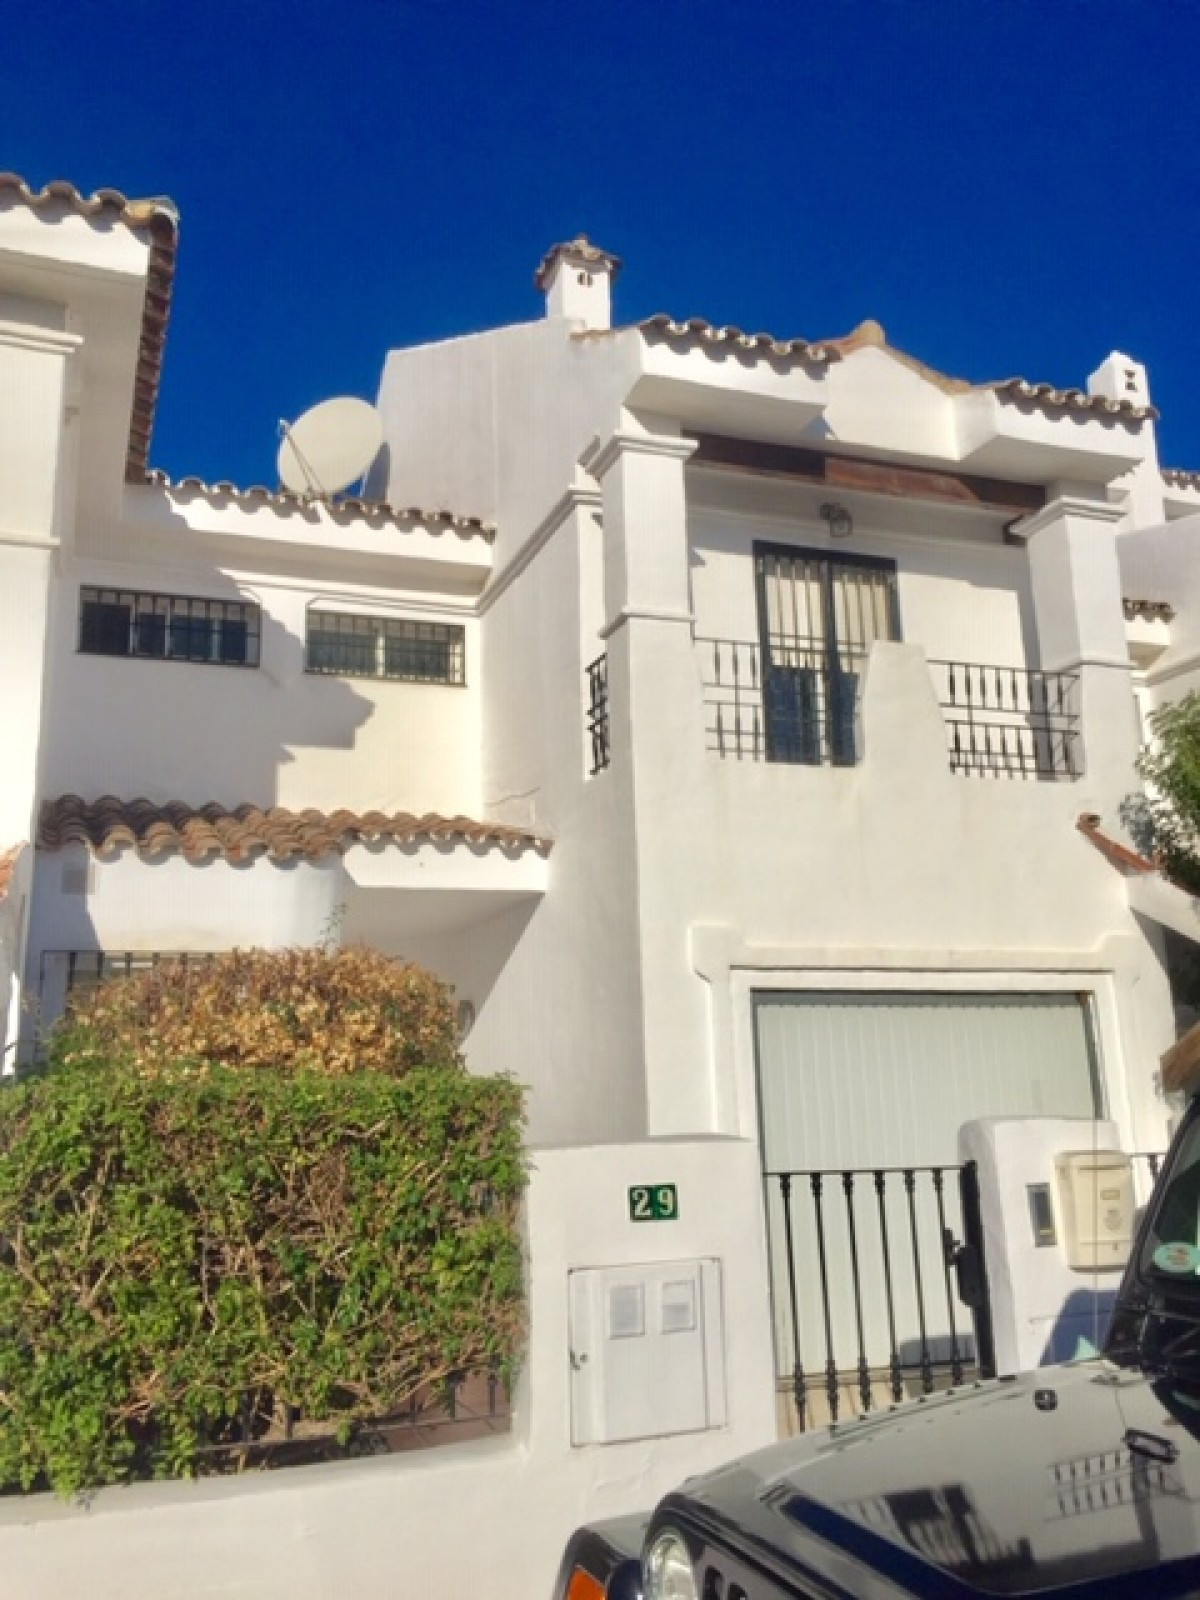 Nicely presented townhouse in Los Naranjos de Marbella situated in Nueva Andalucia with Puerto Banus,Spain